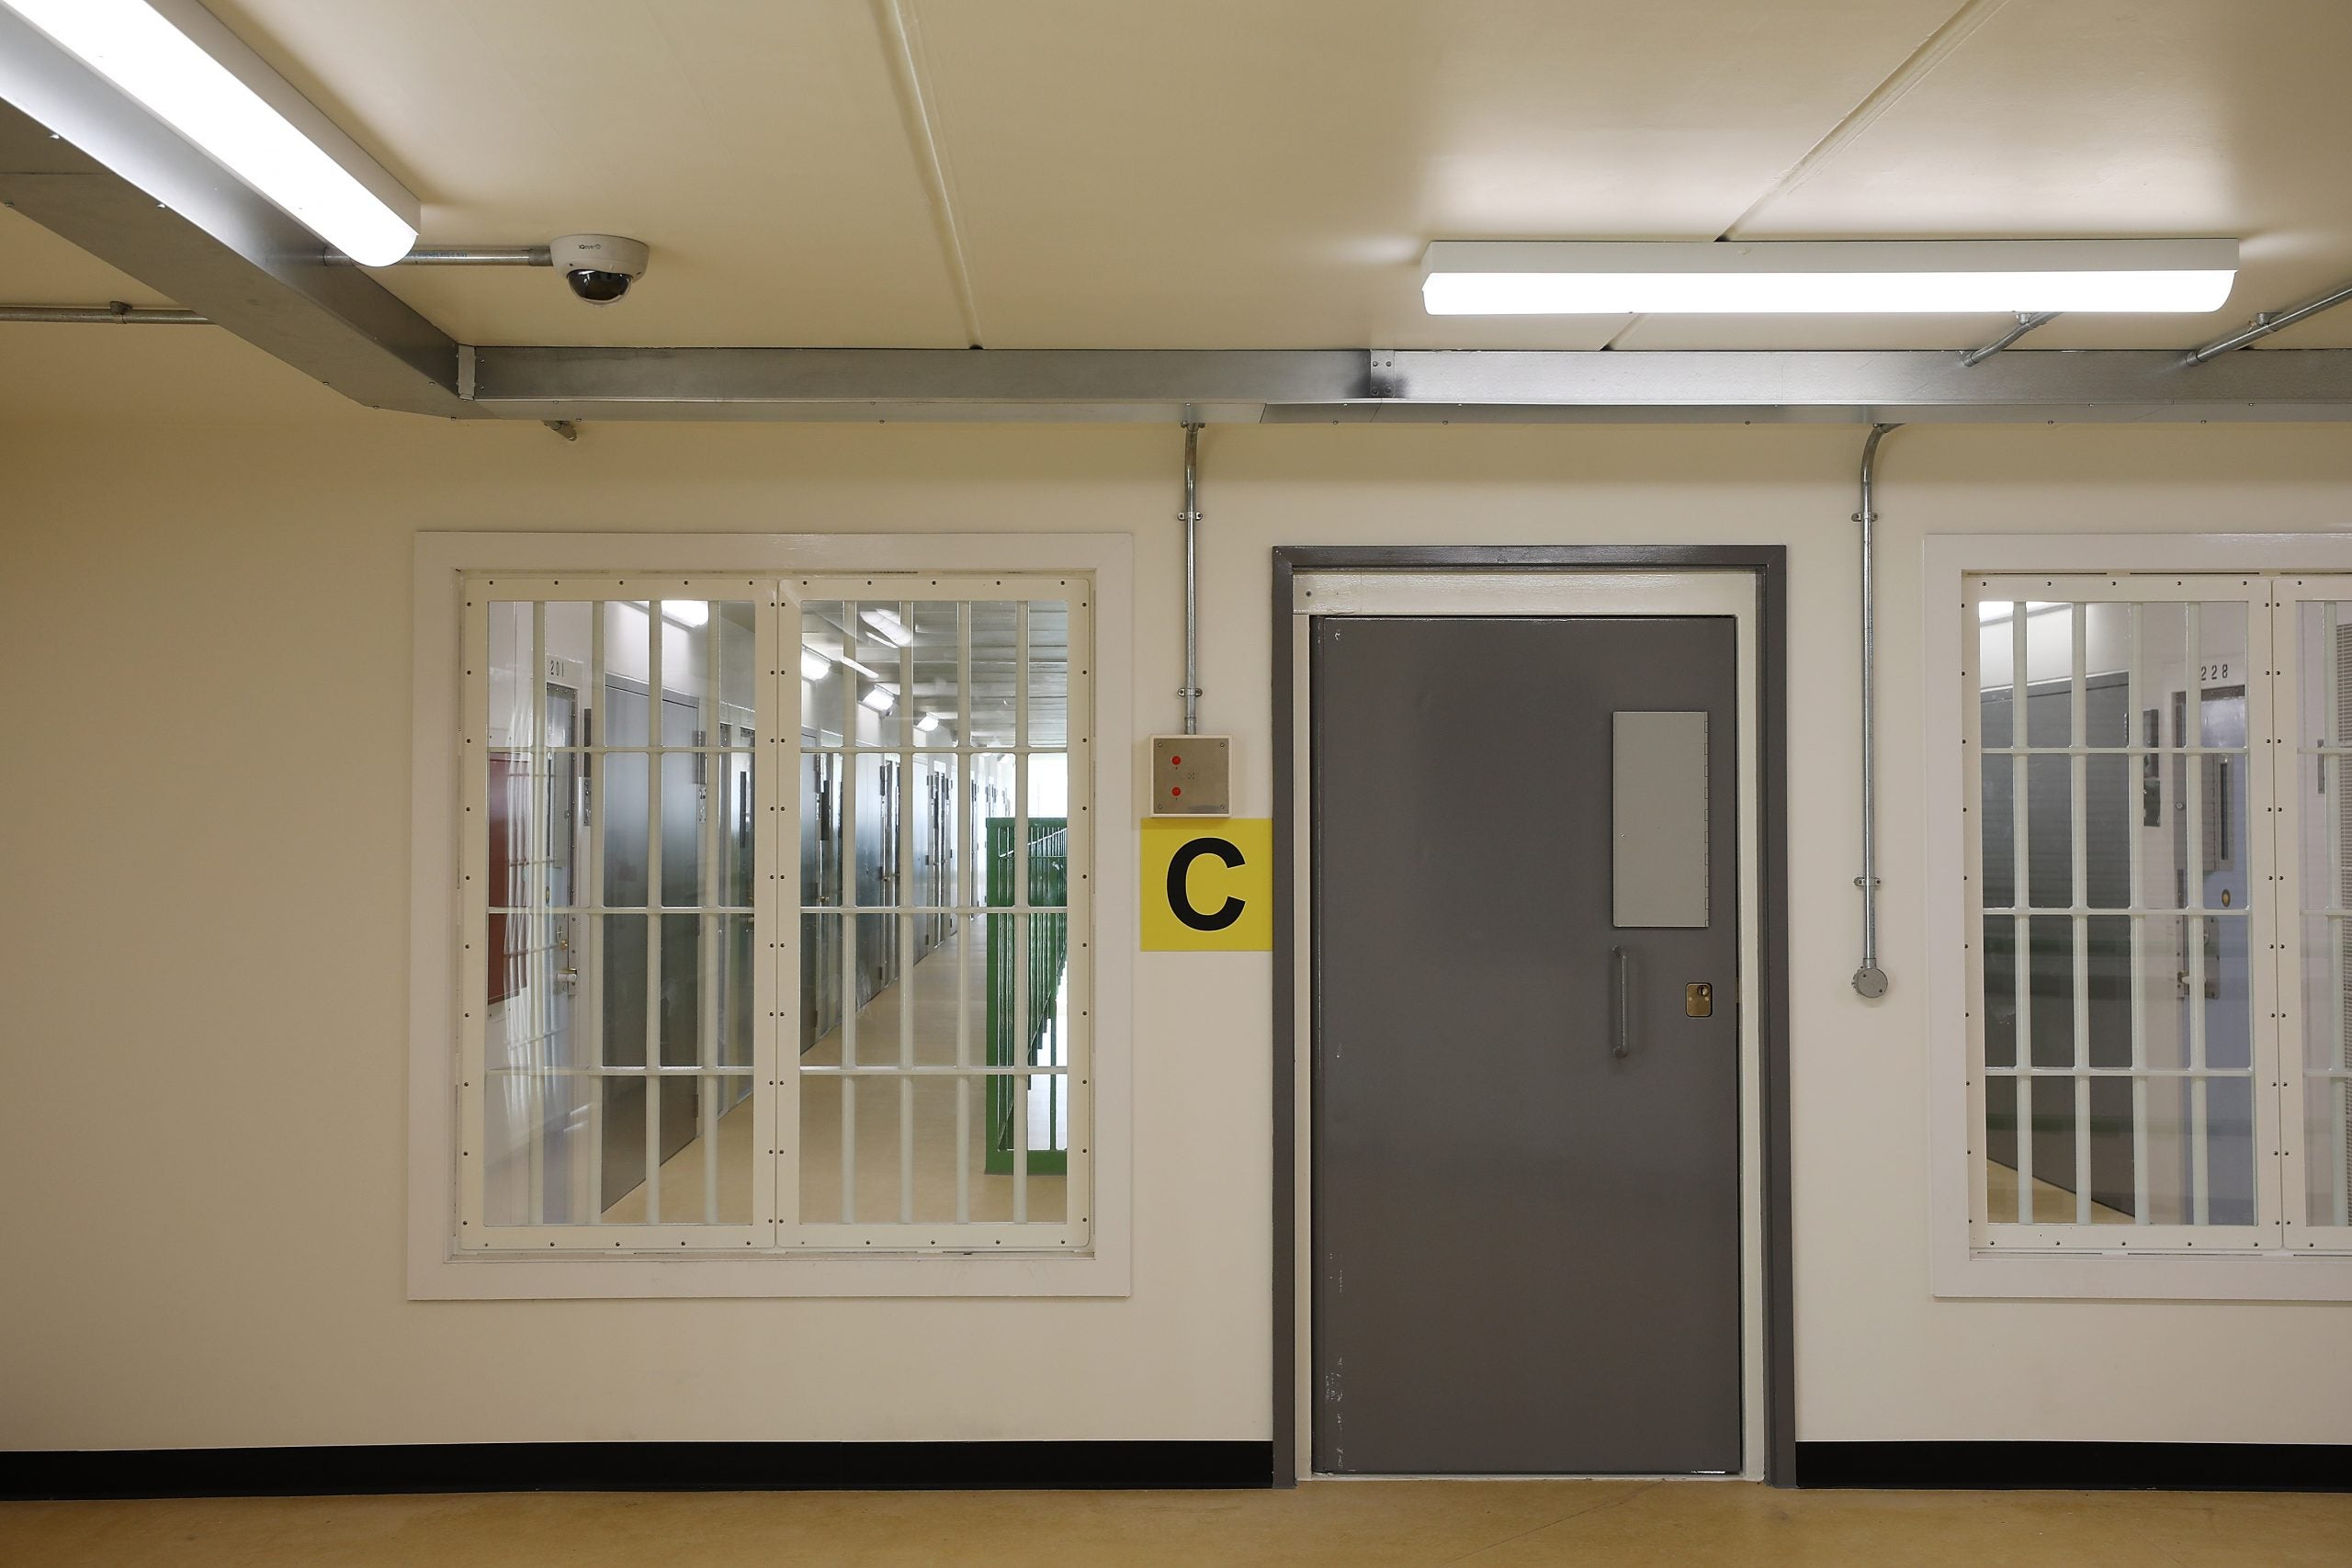 We know that prisons are universities of crime. So why send more people there?